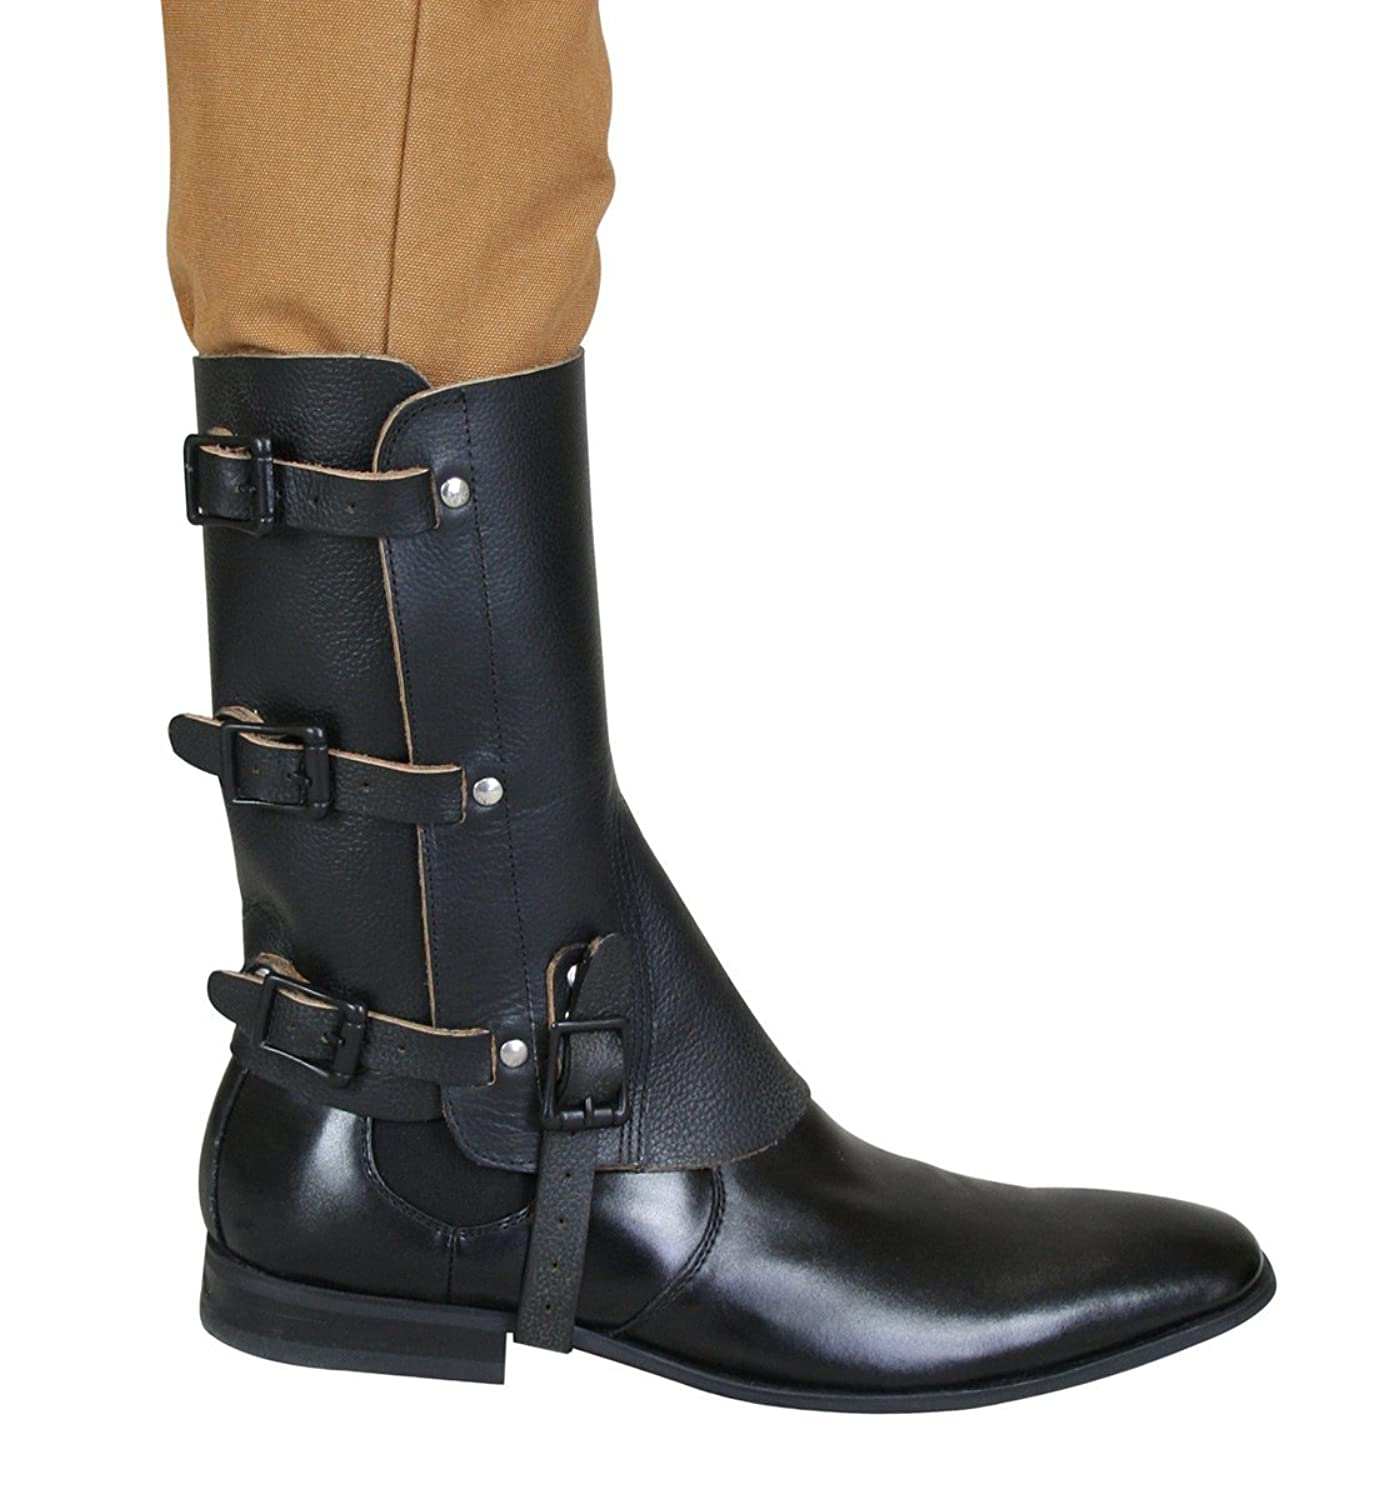 Vintage Boots, Granny Boots, Retro Boots Historical Emporium Mens Deluxe Leather Military Gaiters $49.95 AT vintagedancer.com